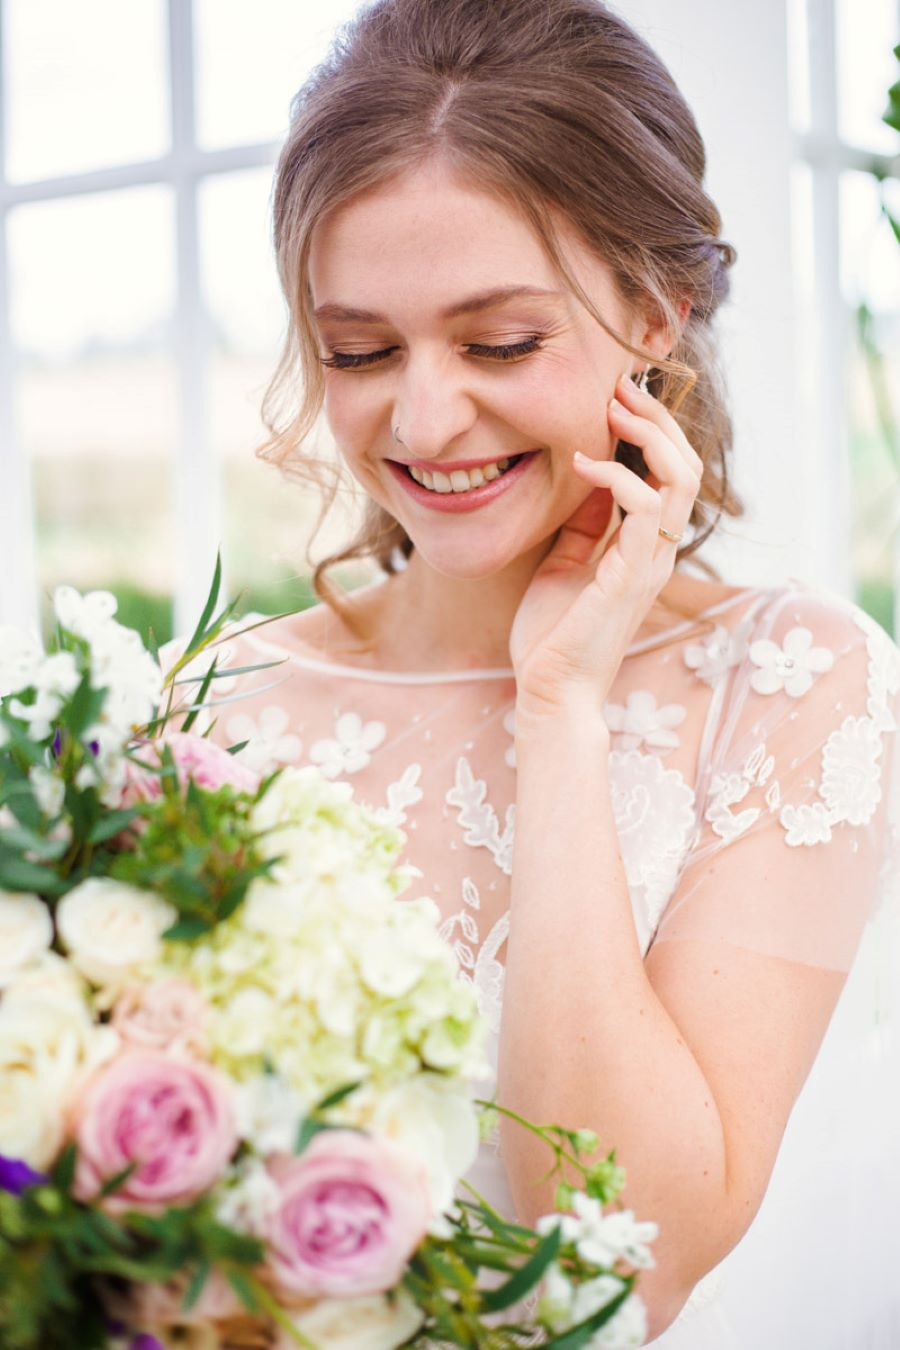 Light and romance with natural blush tones - wedding ideas from Downham Hall. Photographer credit Magical Moments Photography (8)